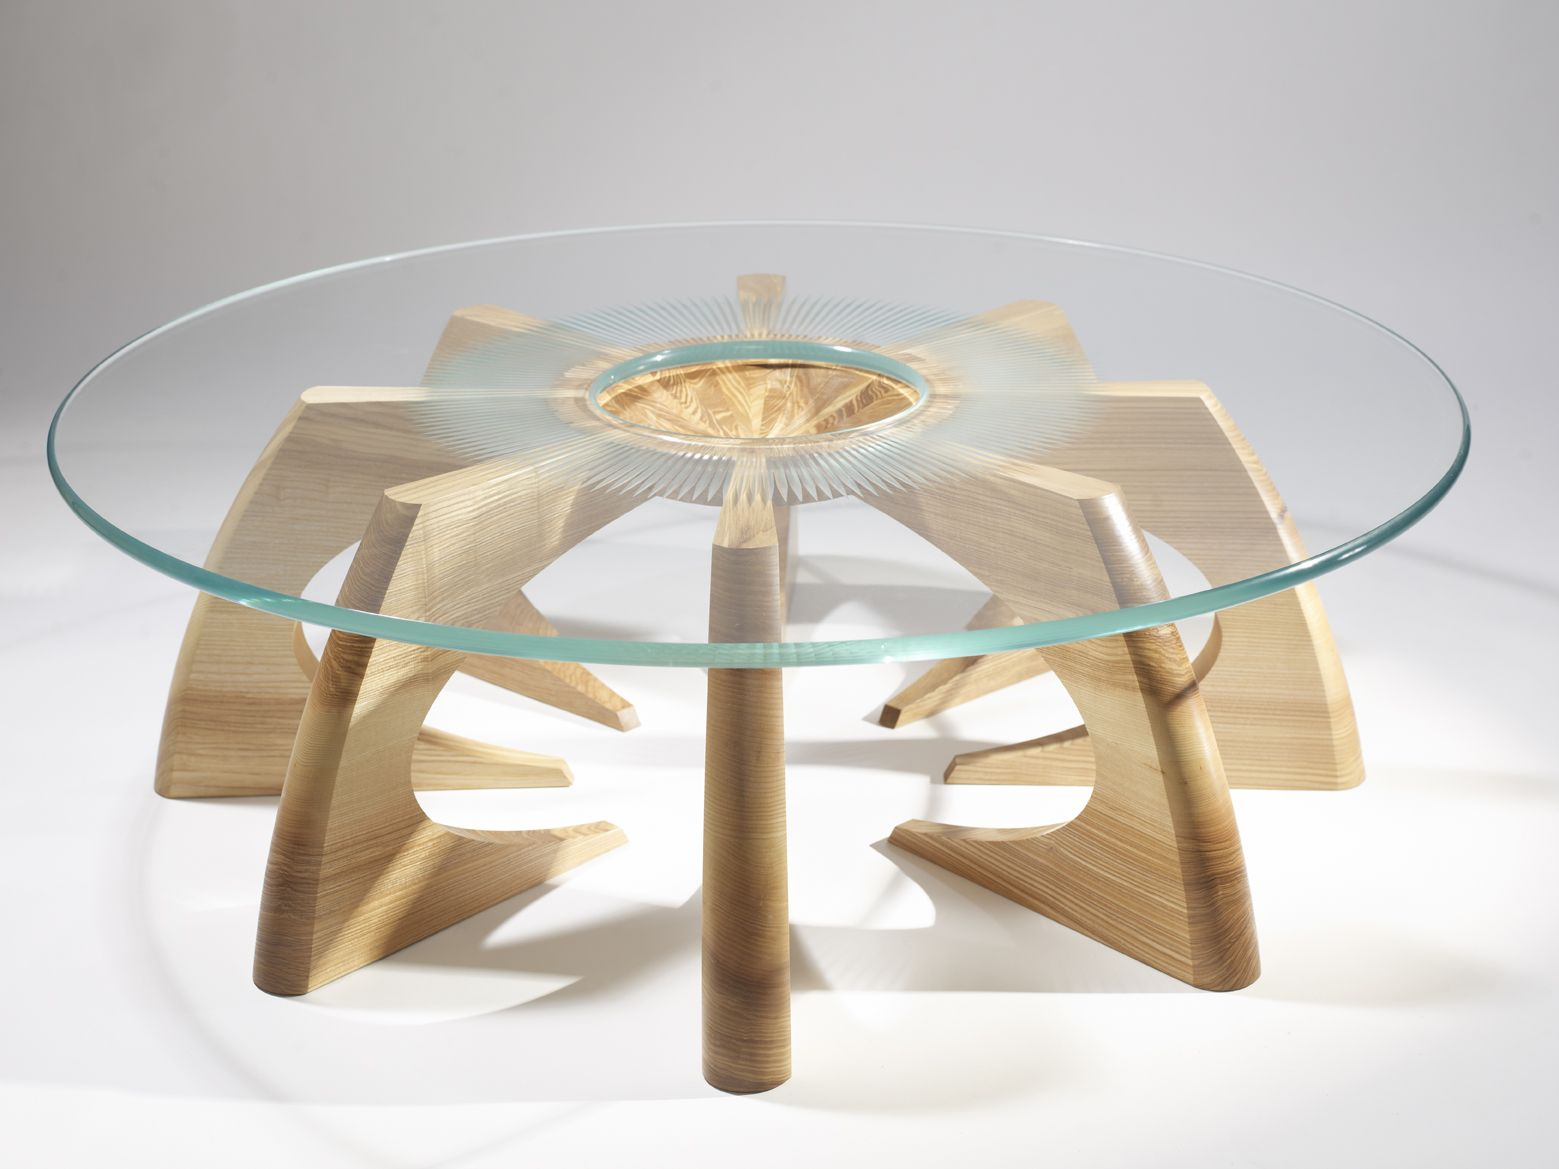 Wood Table Designs Free Wood Furniture Plans Cnc Cutting Milling